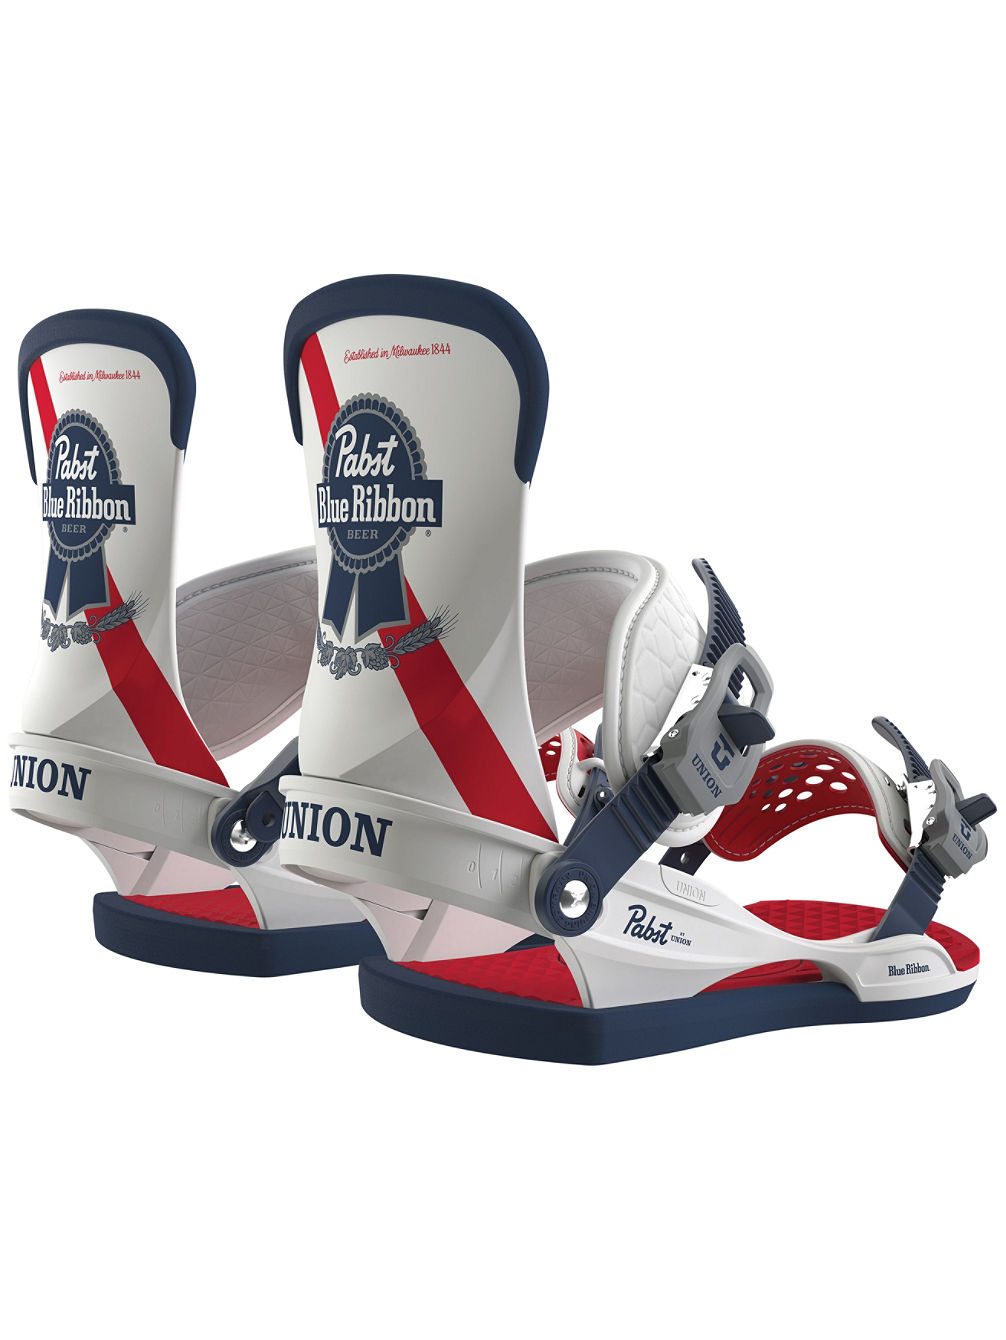 Pabst Blue Ribbon Shoes For Sale